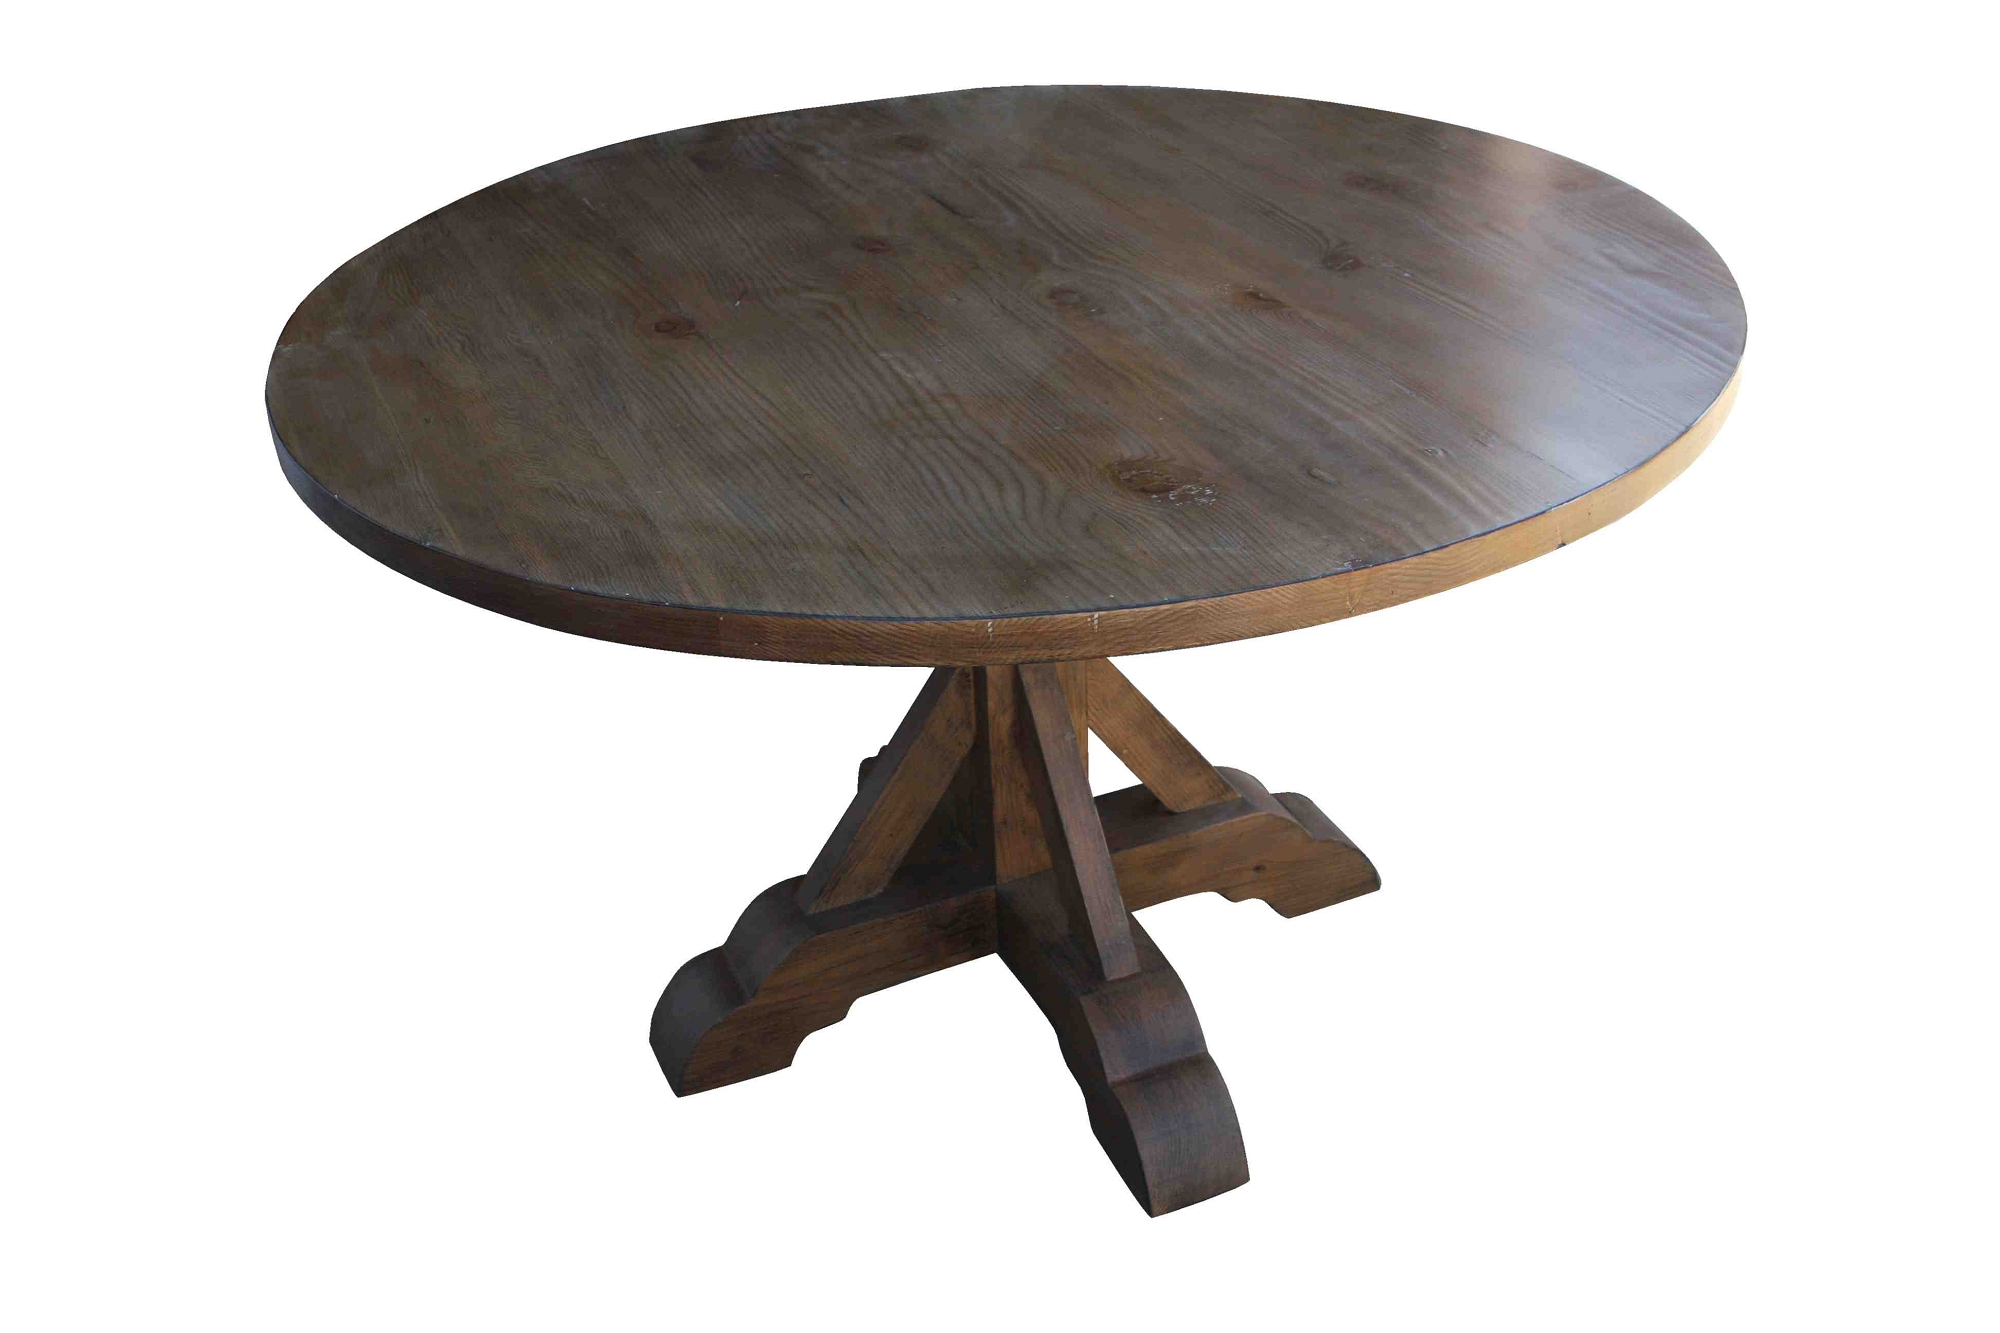 2000x1333px 8 Best Reclaimed Wood Round Dining Tables Picture in Furniture